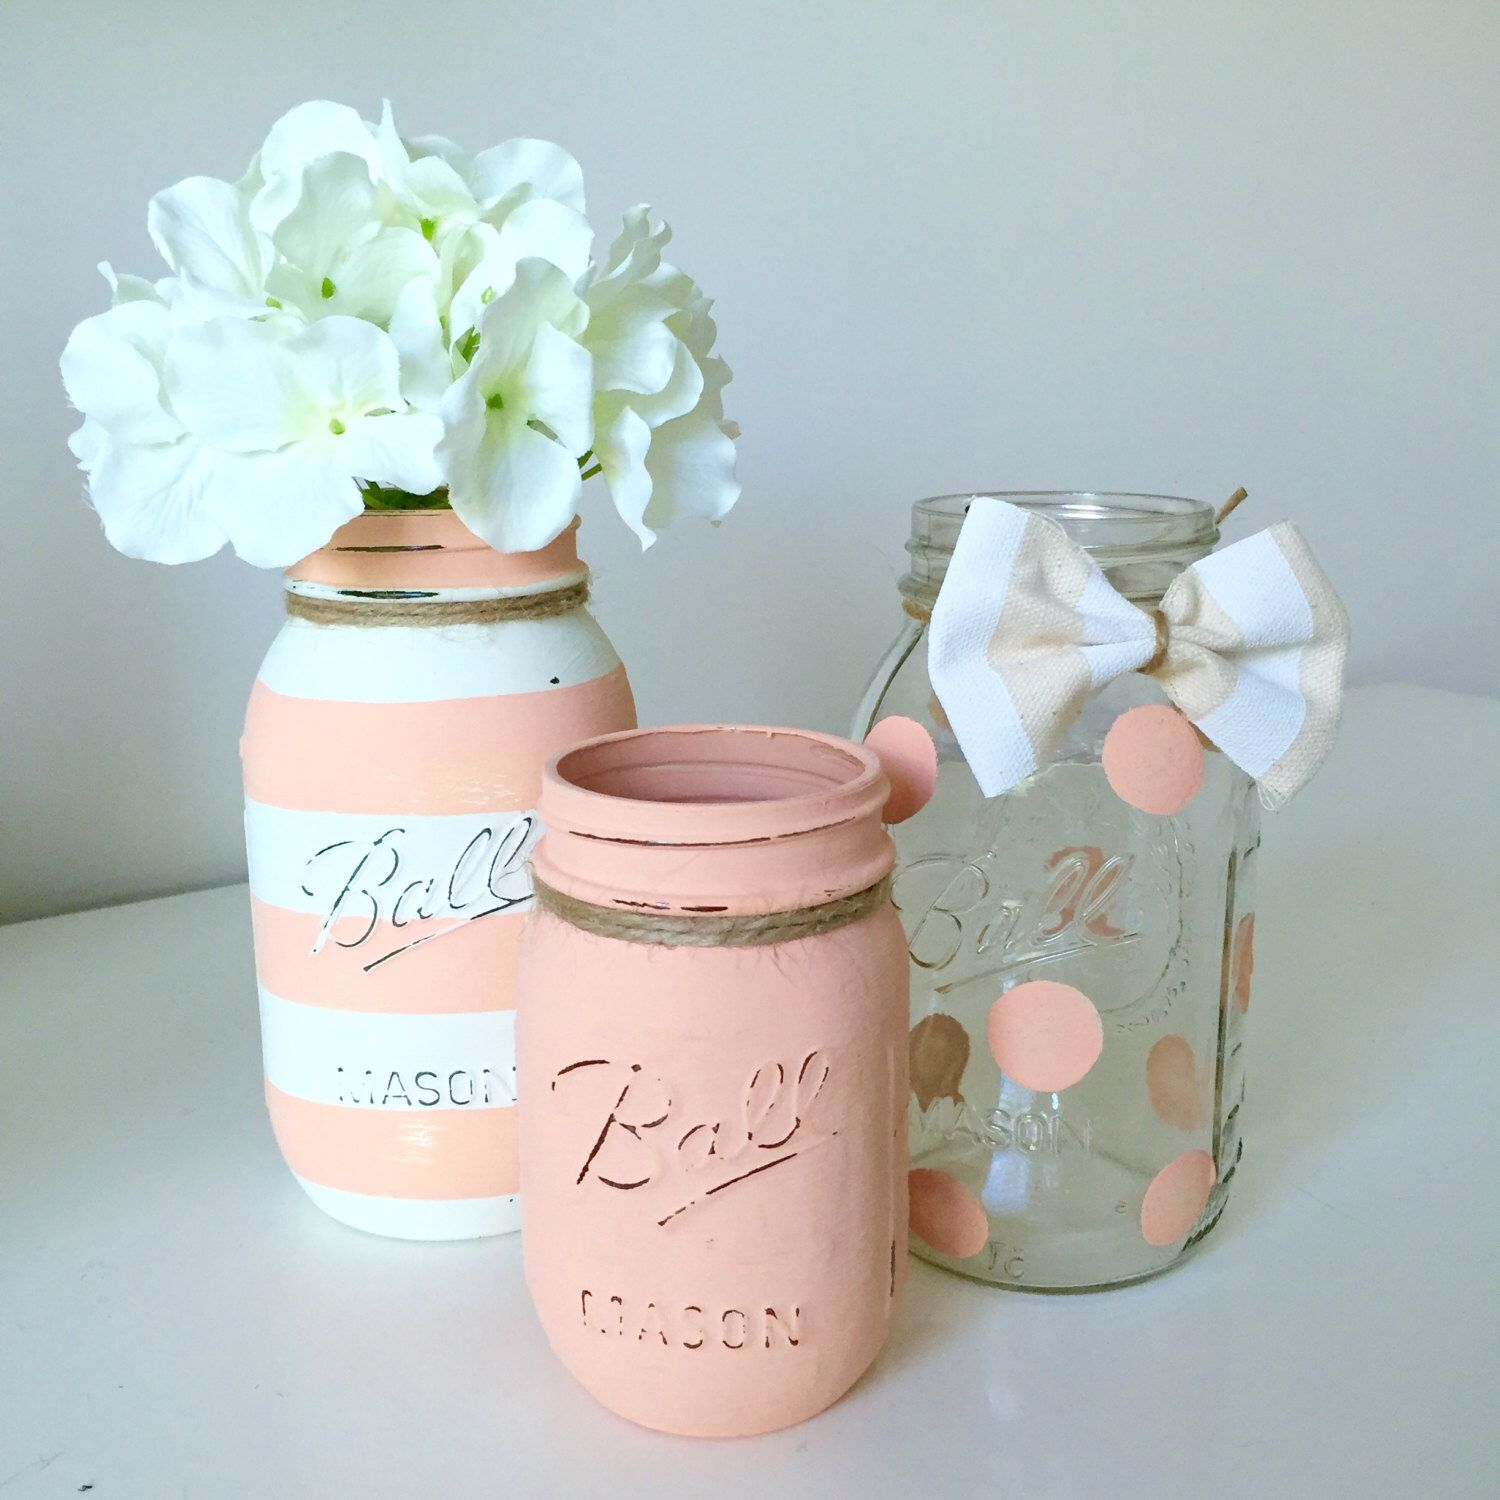 Baby Shower Mason Jar Decor Baby Girl Shower Baby Boy Shower Peach Painted Mason Jars Centerpie Mason Jar Baby Shower Mason Jar Decorations Baby Boy Shower